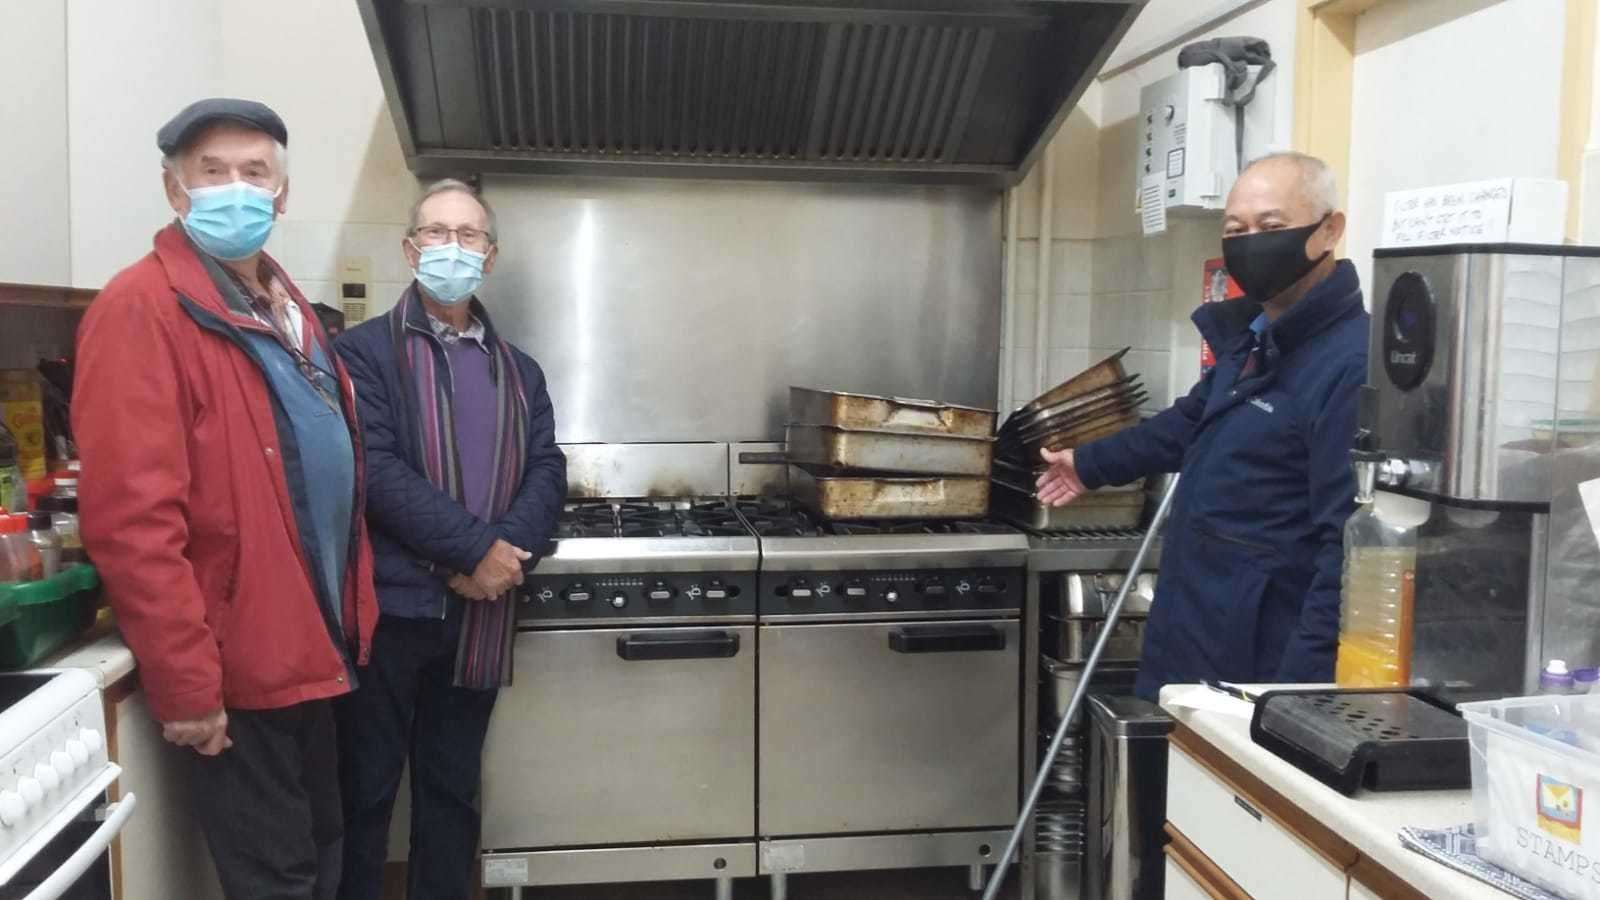 President Yim Kong (right) with Roger Adams and Geoff Collet of Stamford Rotary St Martins inspecting the old kitchen